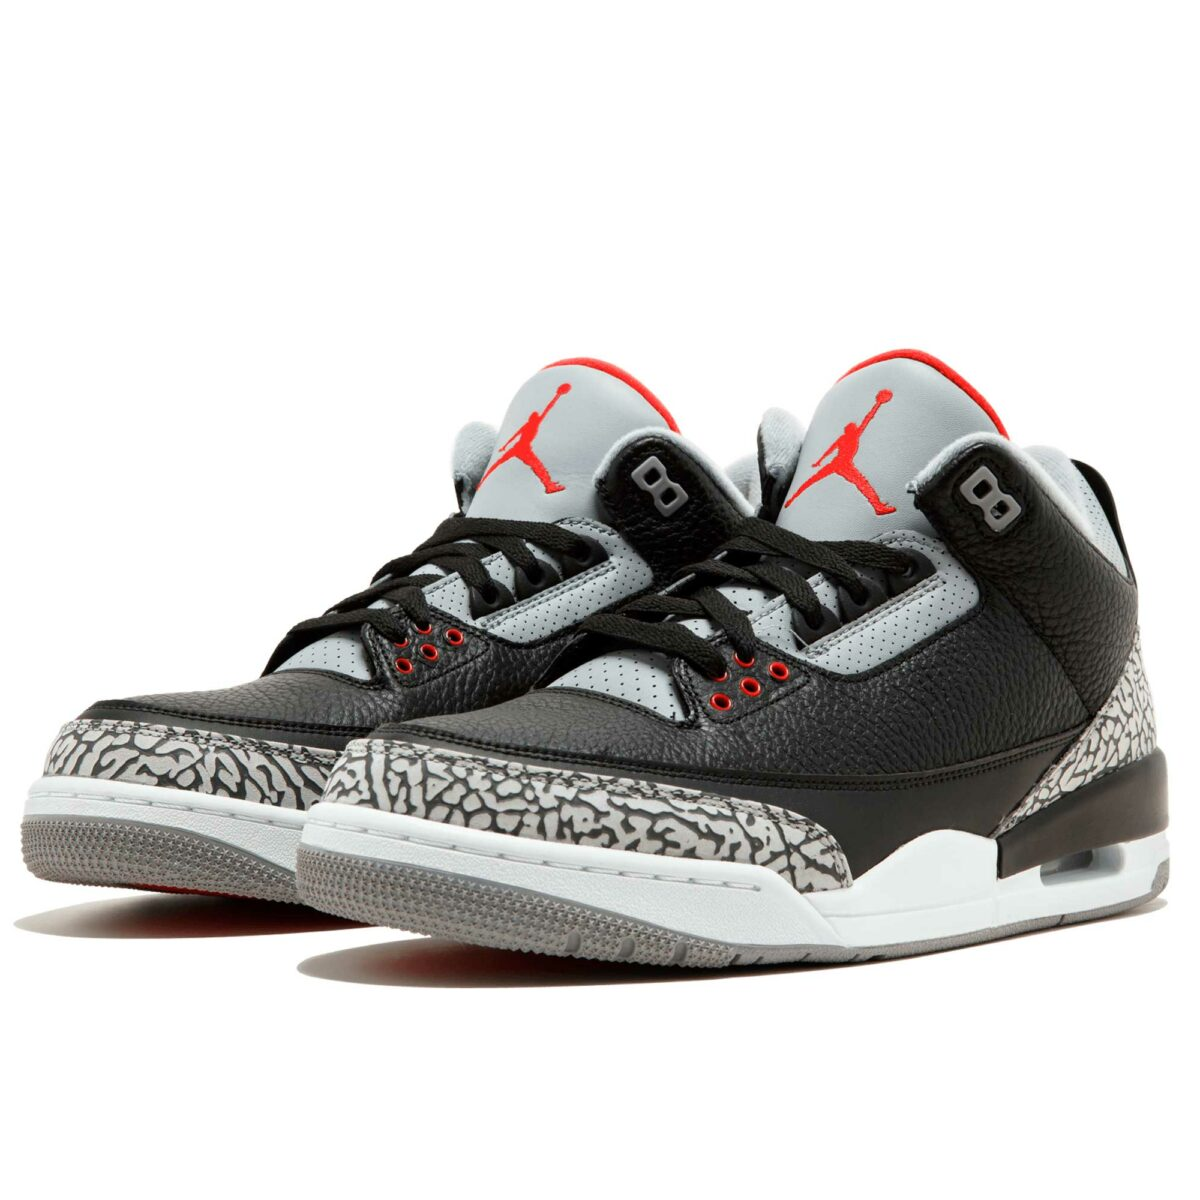 nike air jordan 3 retro og black cement 854262_001 интернет магазин